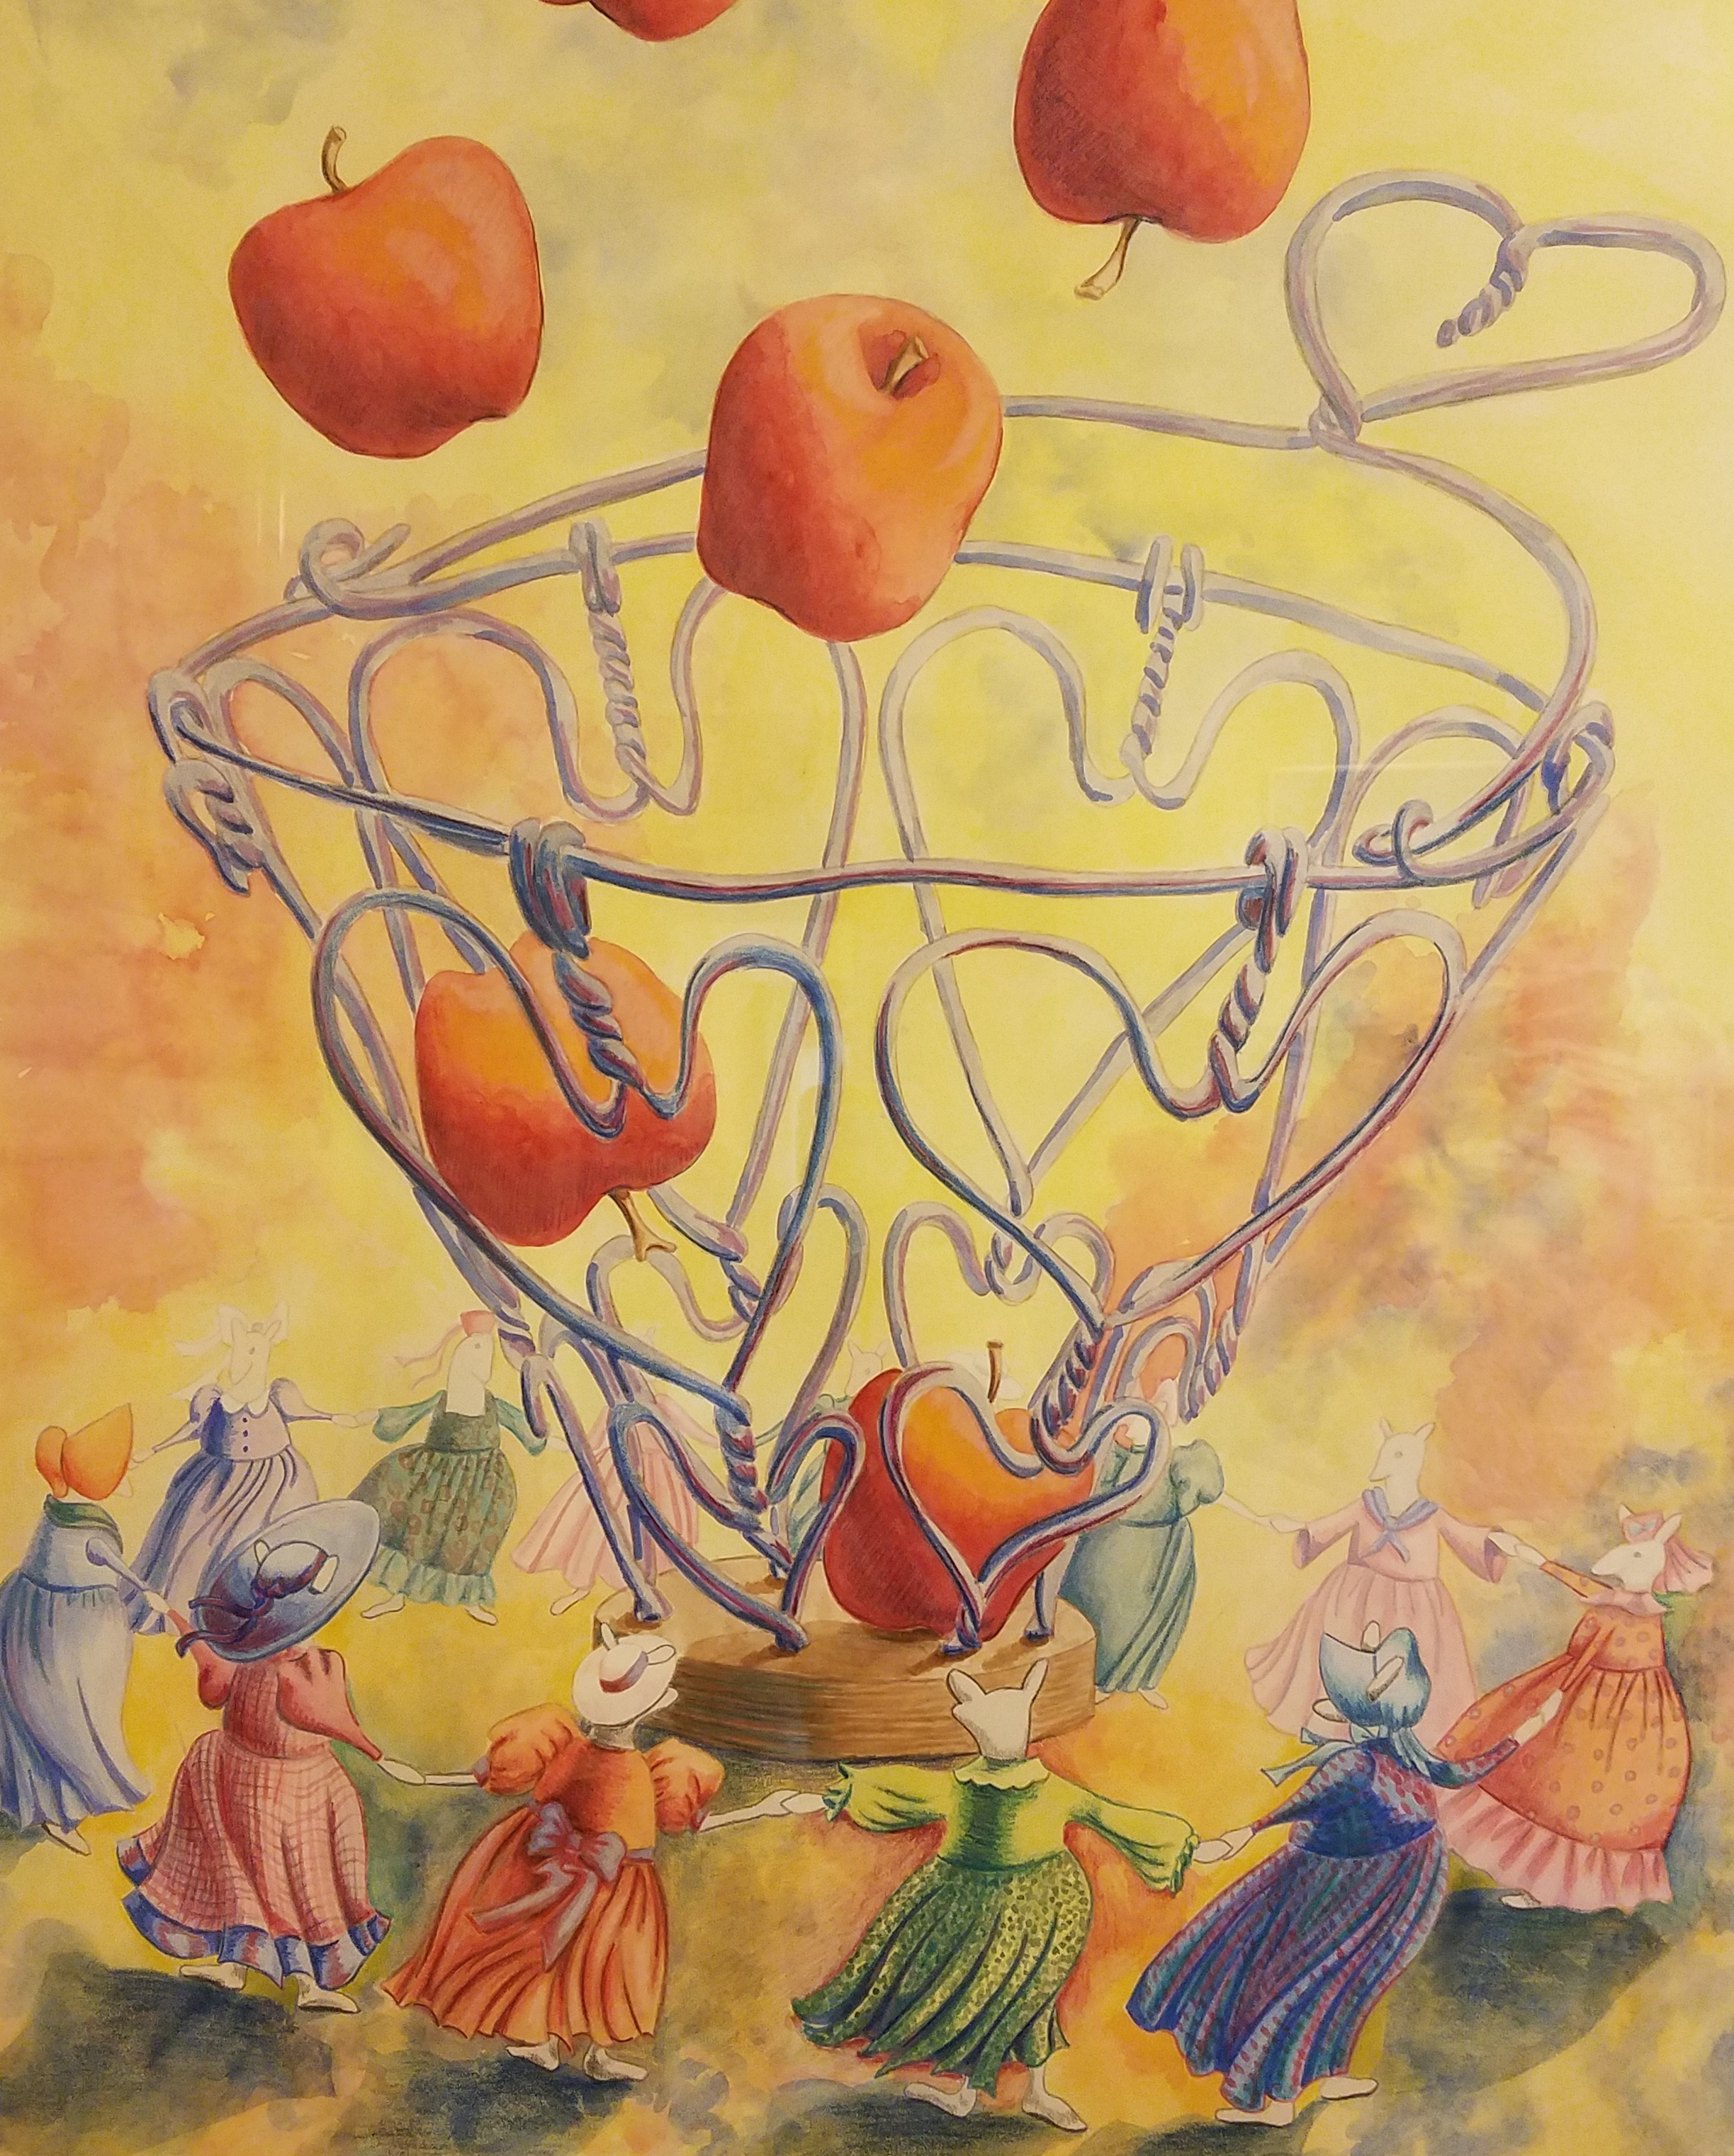 Mice dancing around a basket of apples